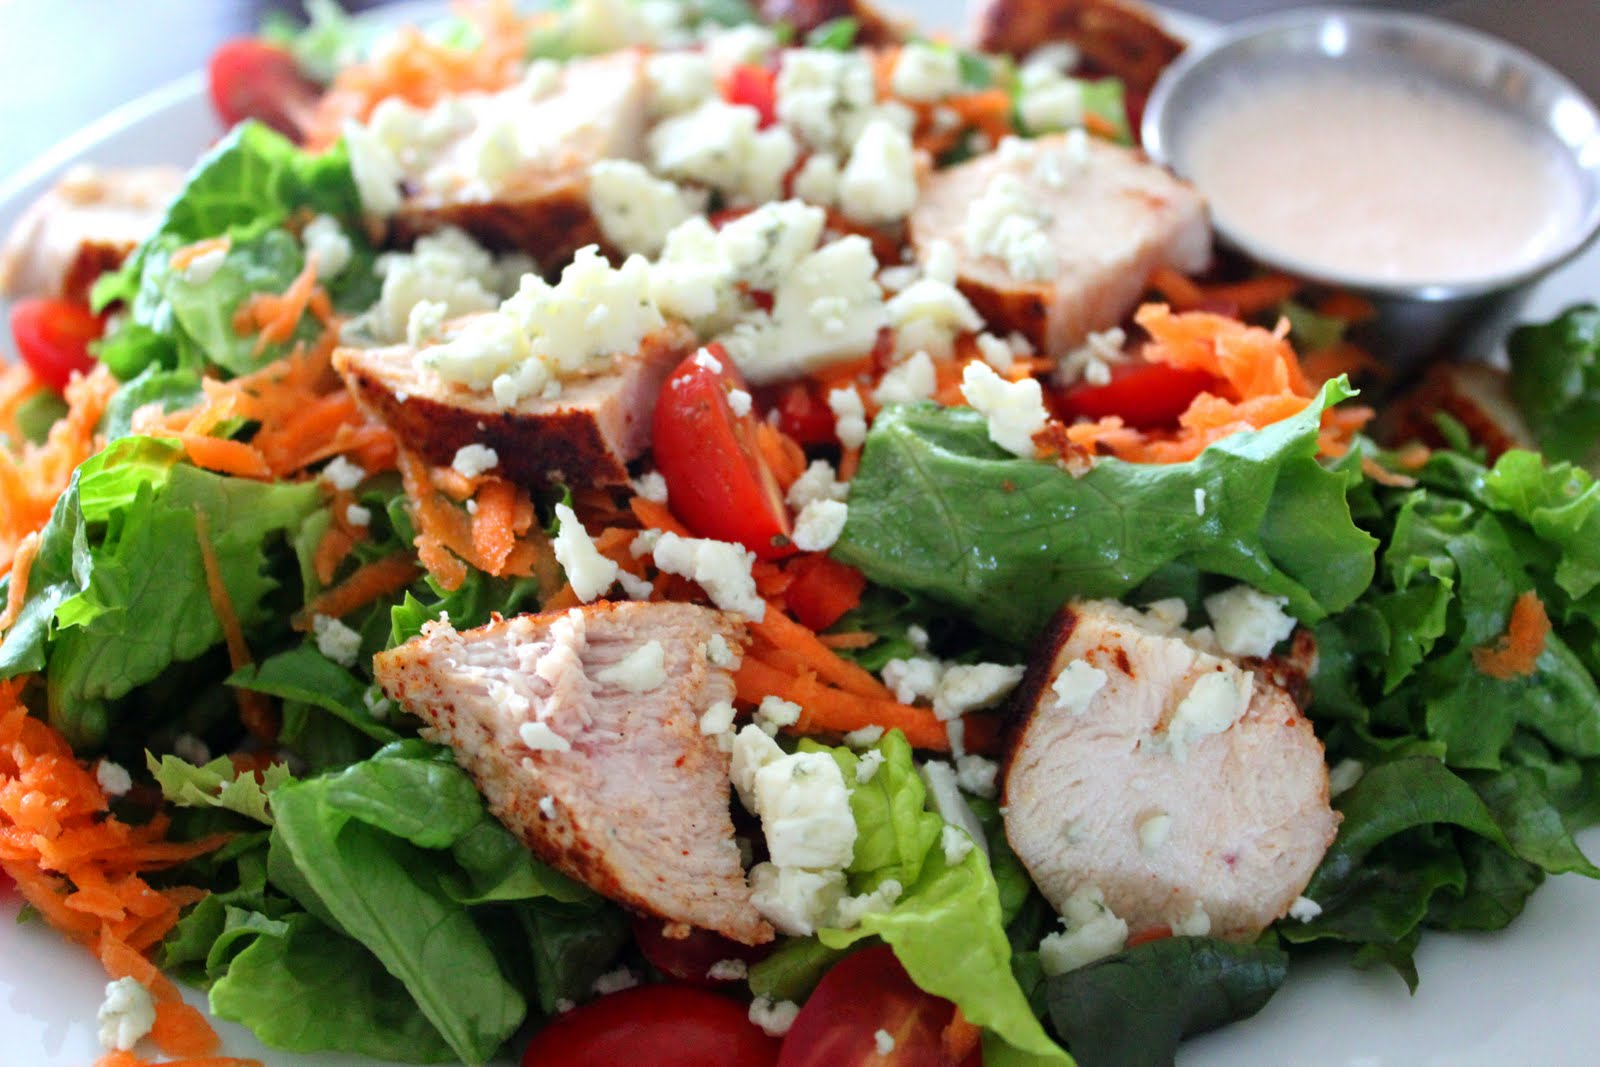 ... celery and crumbled blue cheese give this easy 15-minute chicken salad